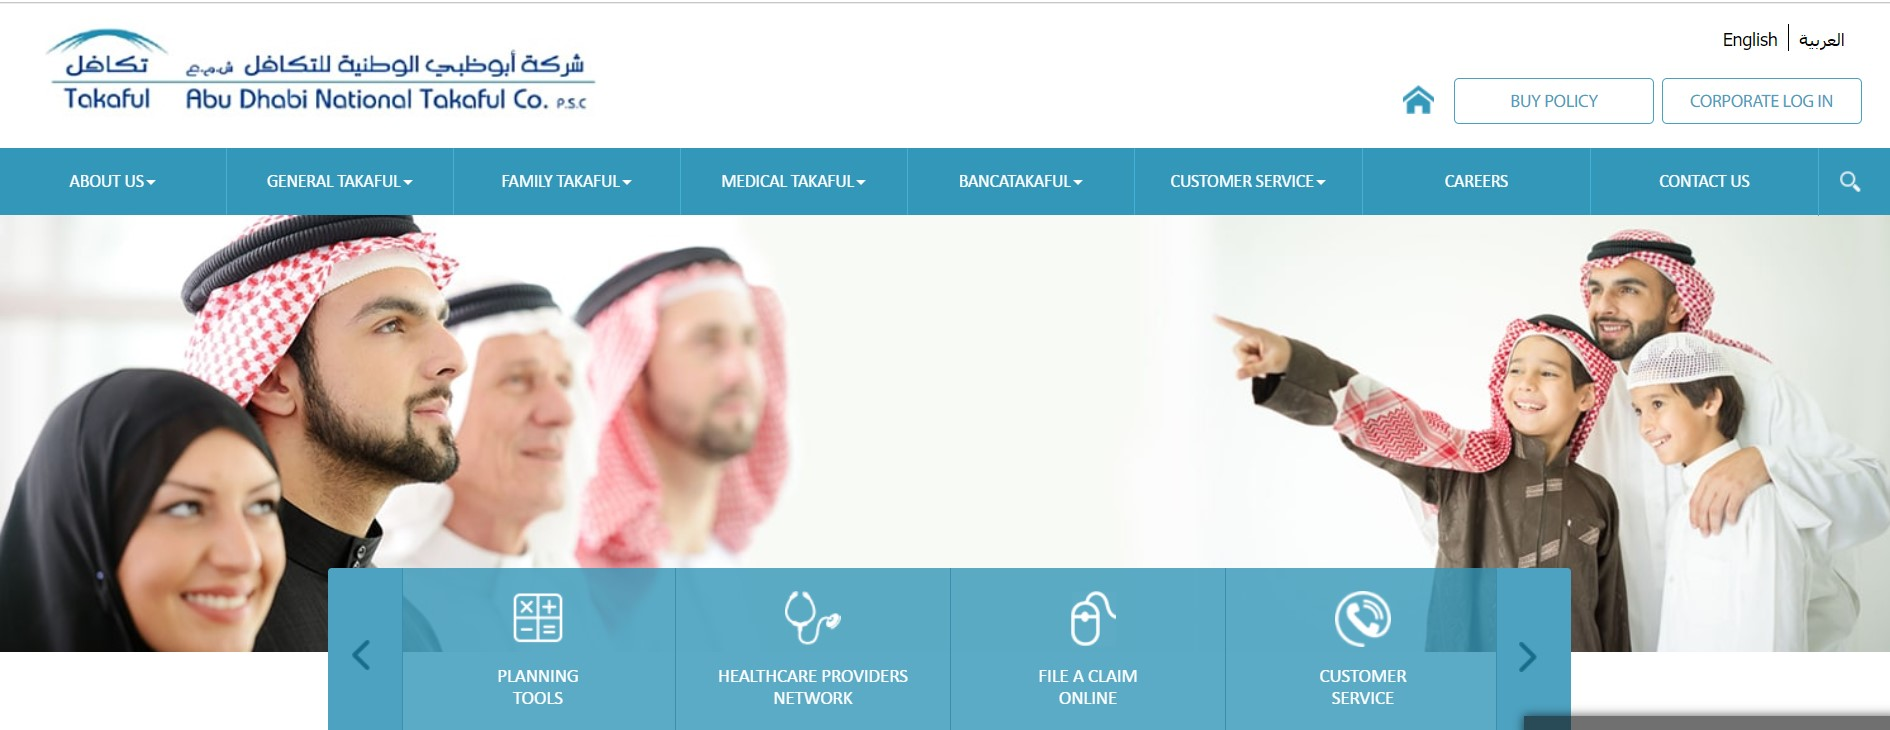 Abu Dhabi National Takaful Co. P.S.C